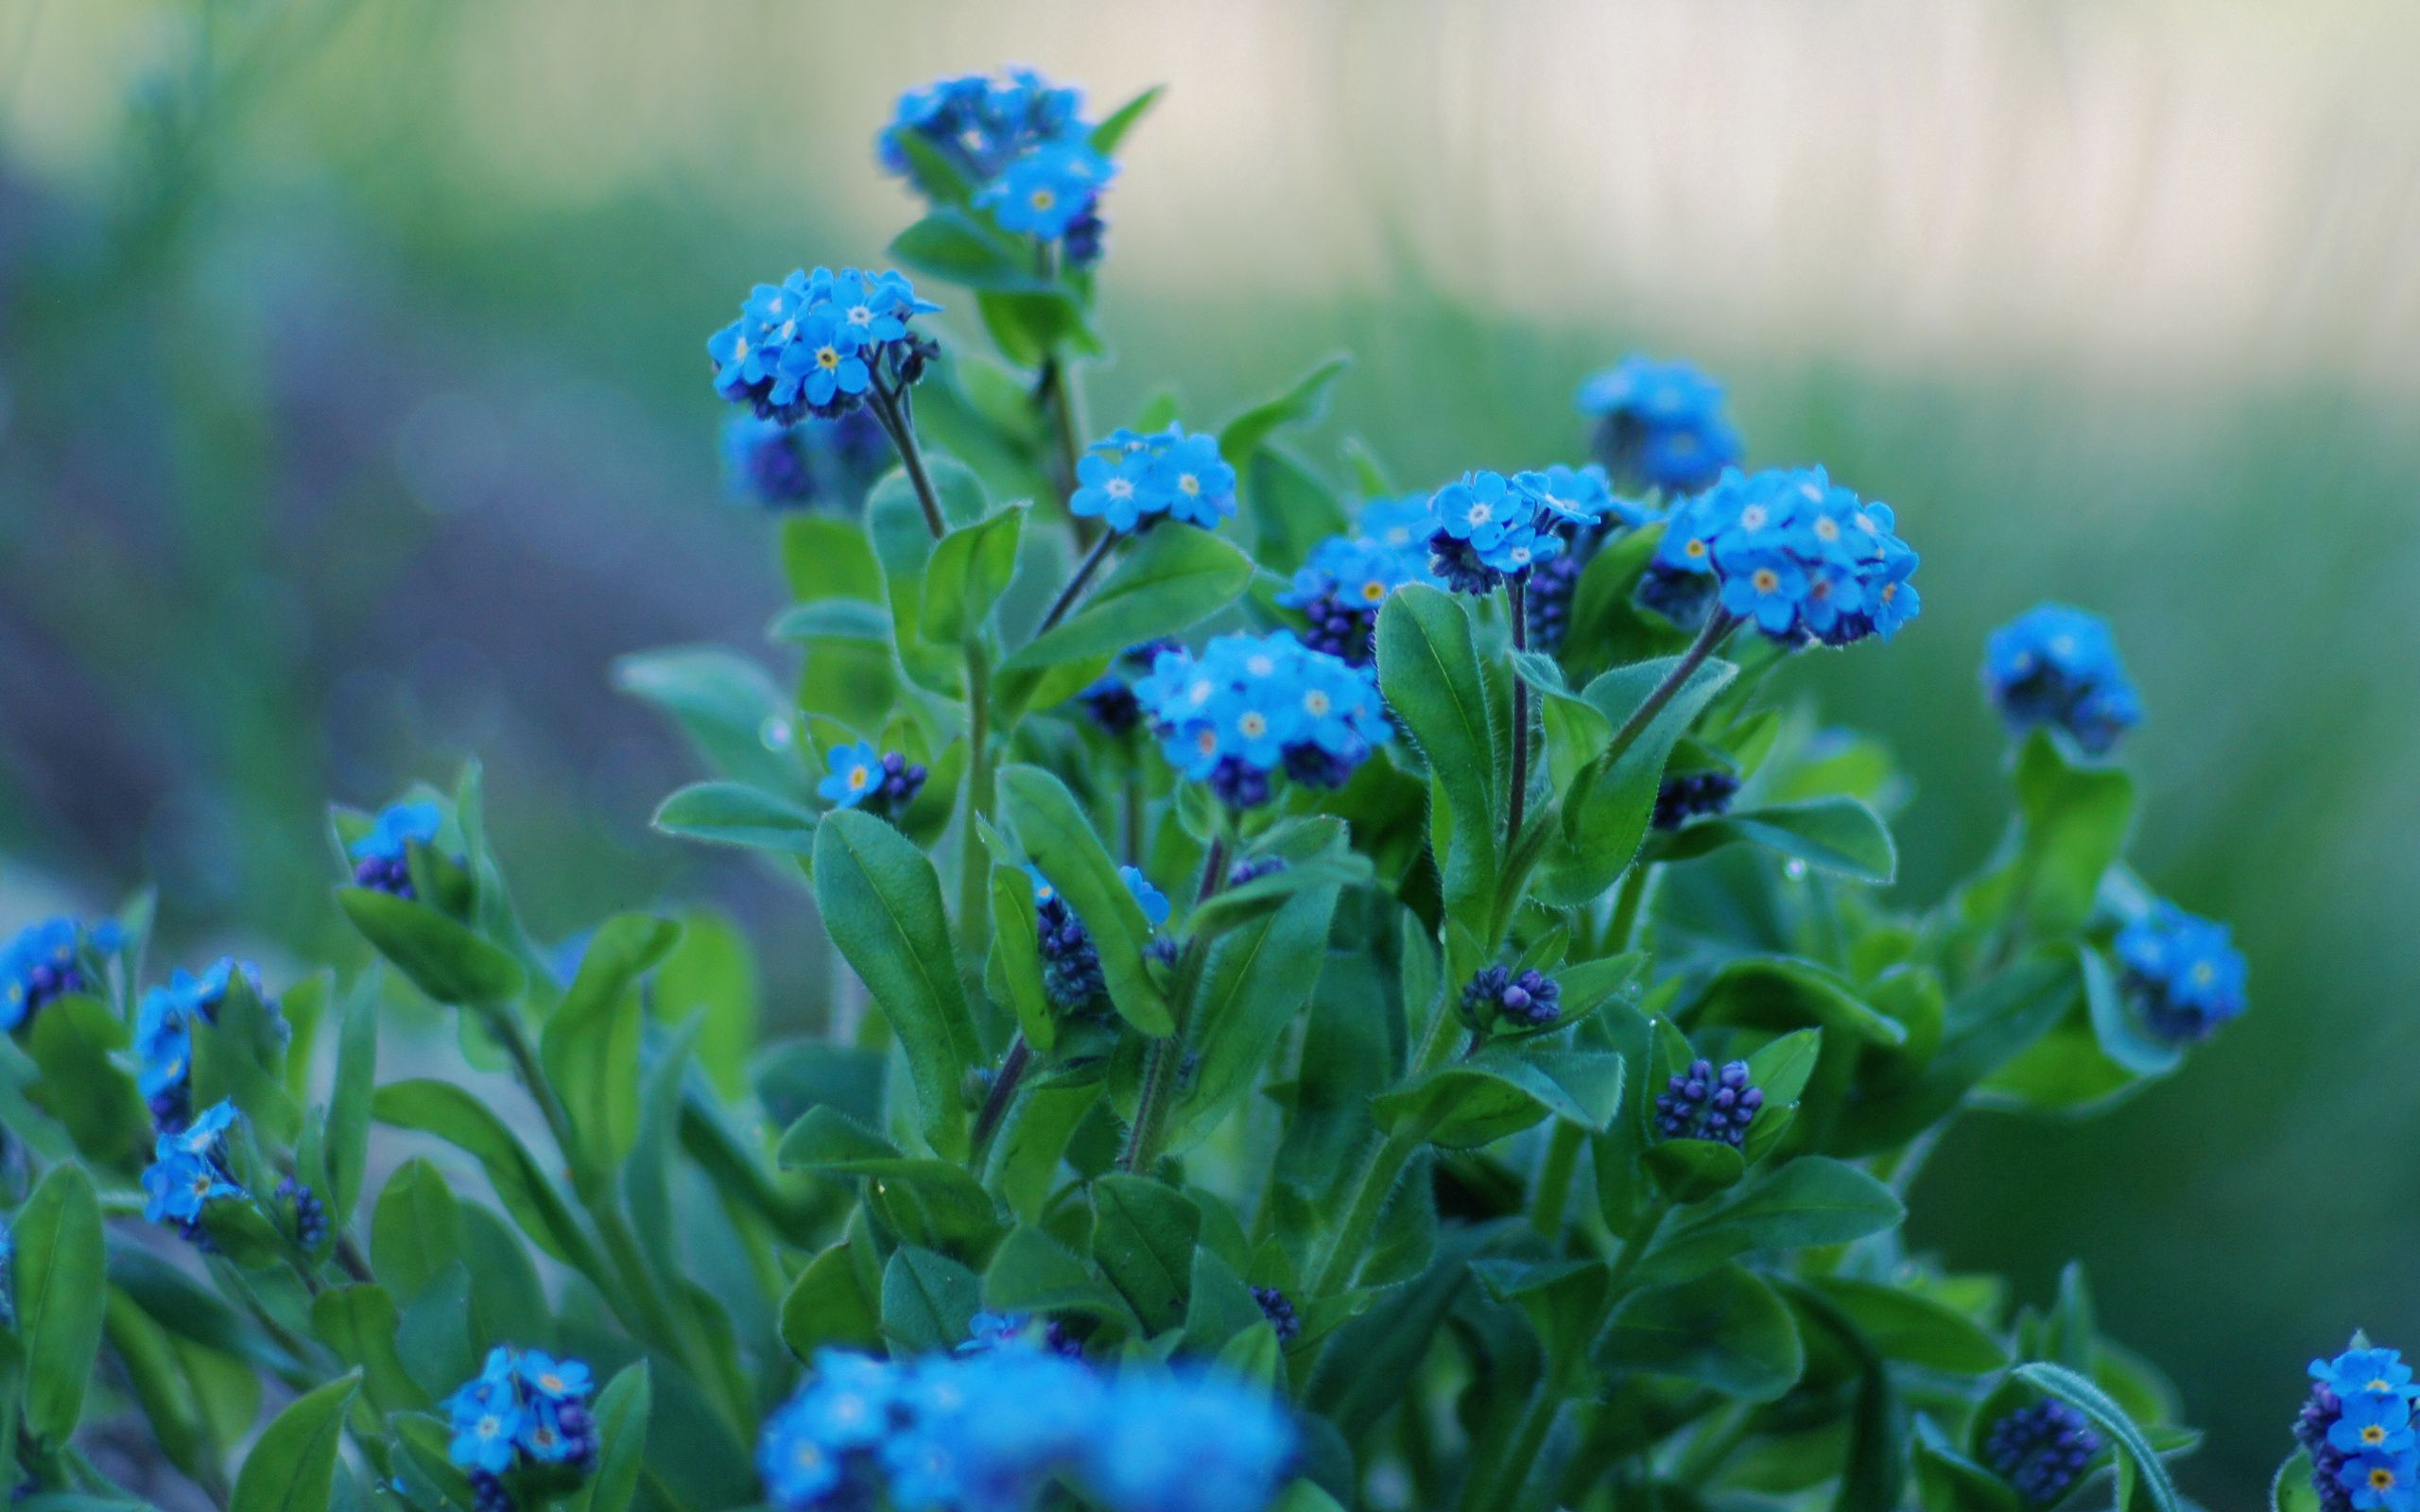 109249 free download Blue wallpapers for phone, Macro, Leaves, Petals, Forget-Me-Nots, Flowers Blue images and screensavers for mobile